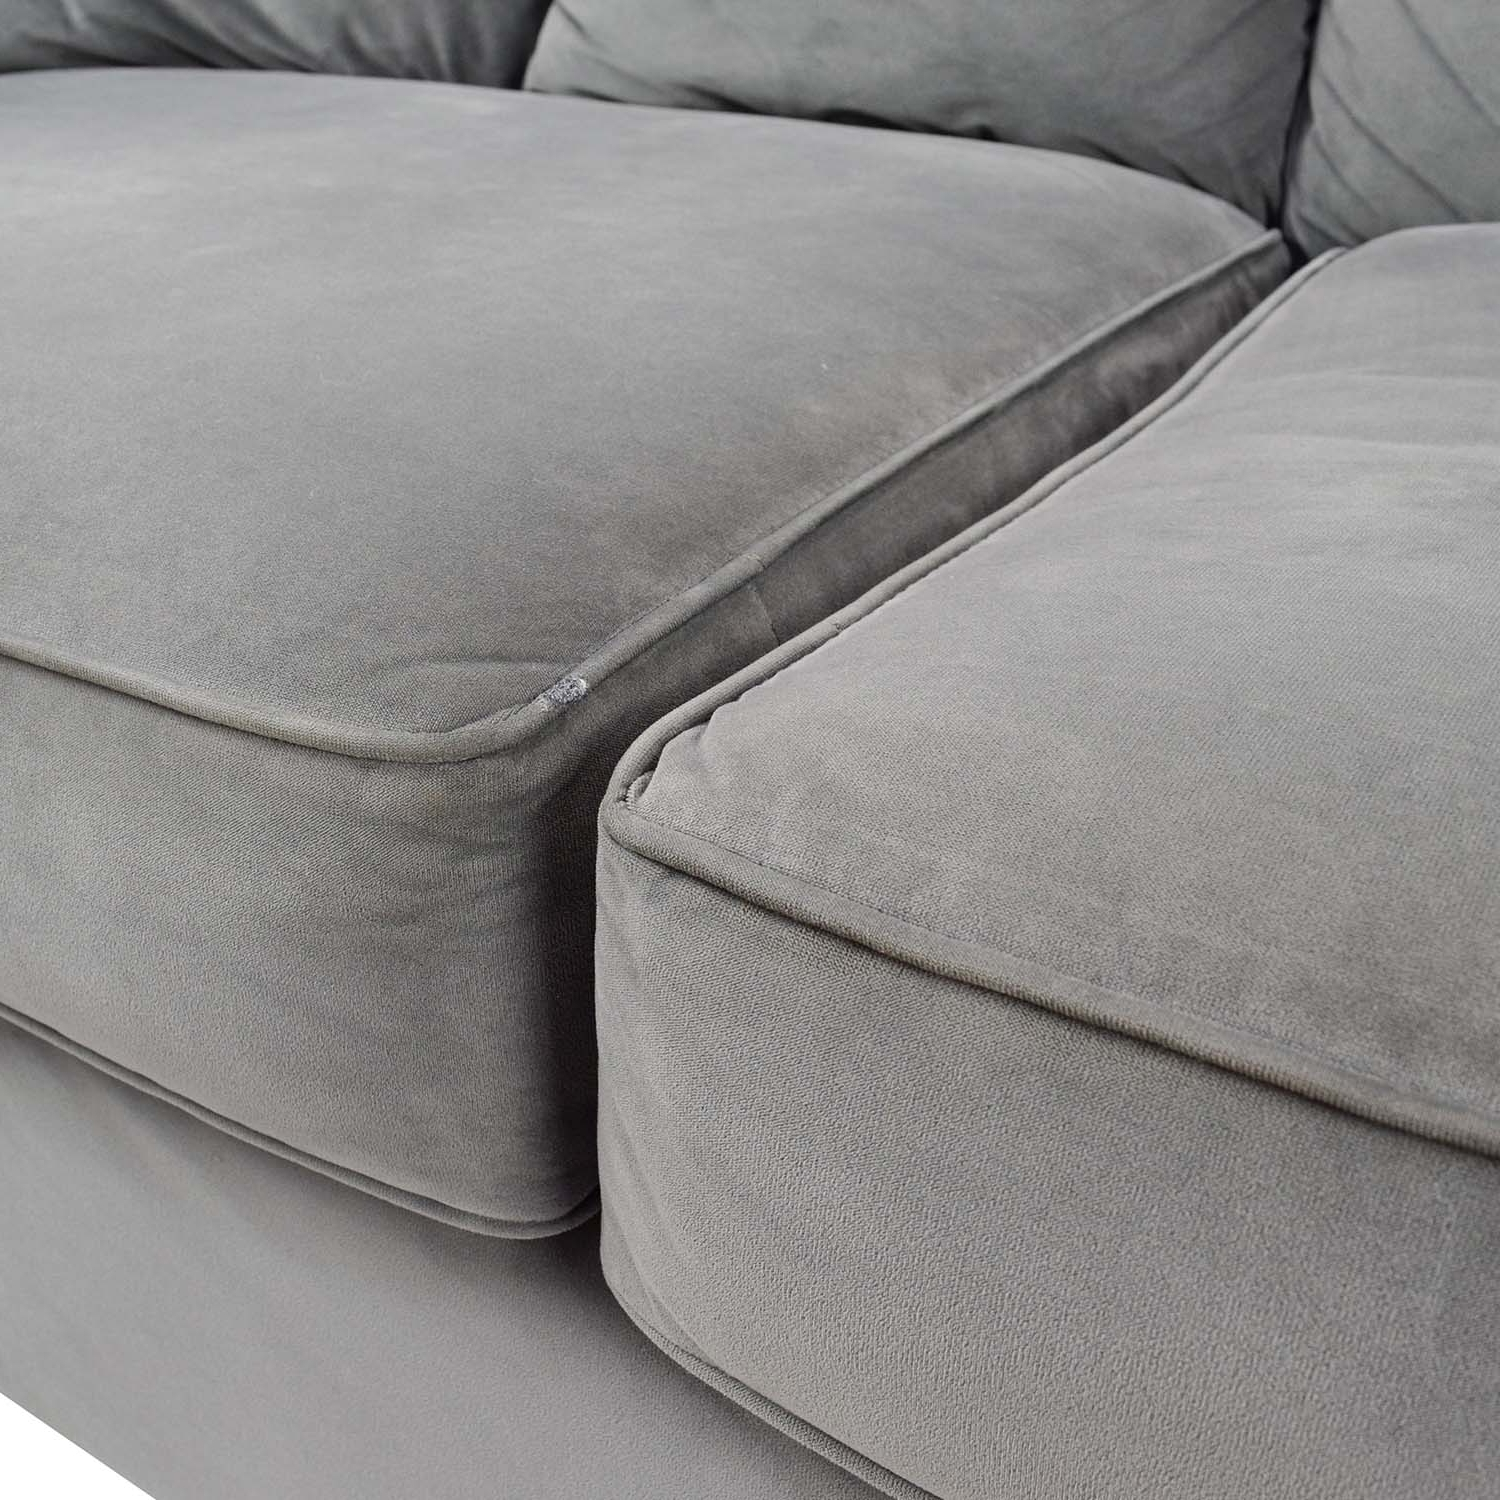 [%53% Off – Jennifer Convertibles Jennifer Convertibles Grey Couch For Well Known Jennifer Sofas|Jennifer Sofas With Most Popular 53% Off – Jennifer Convertibles Jennifer Convertibles Grey Couch|Latest Jennifer Sofas With 53% Off – Jennifer Convertibles Jennifer Convertibles Grey Couch|Most Current 53% Off – Jennifer Convertibles Jennifer Convertibles Grey Couch Inside Jennifer Sofas%] (View 1 of 20)